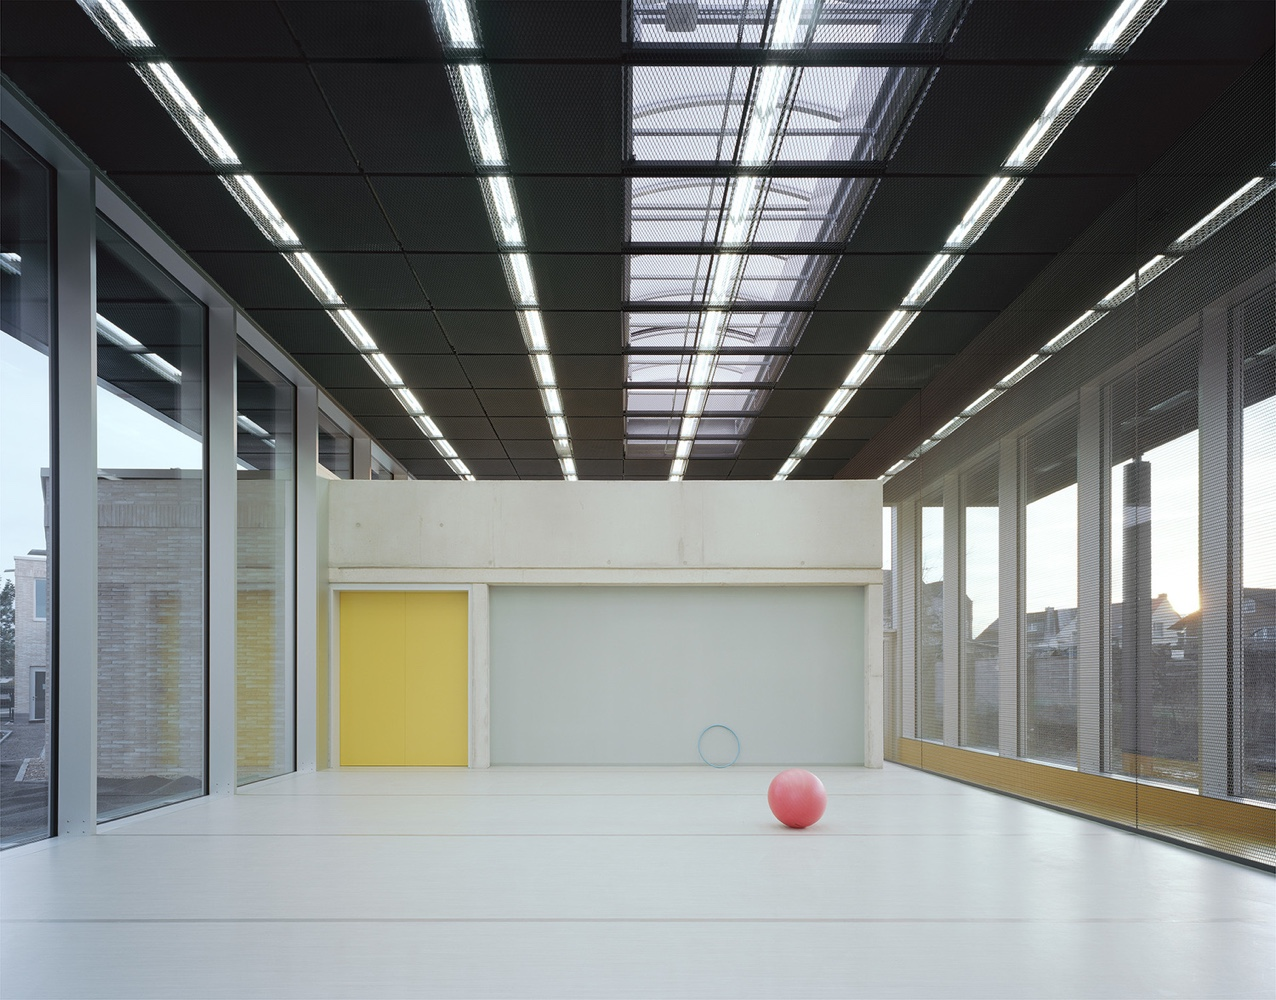 Interior space at Kindergarten Kunterbunt. Designed by Ecker Architected, it is located in the German town of Babenhausen.